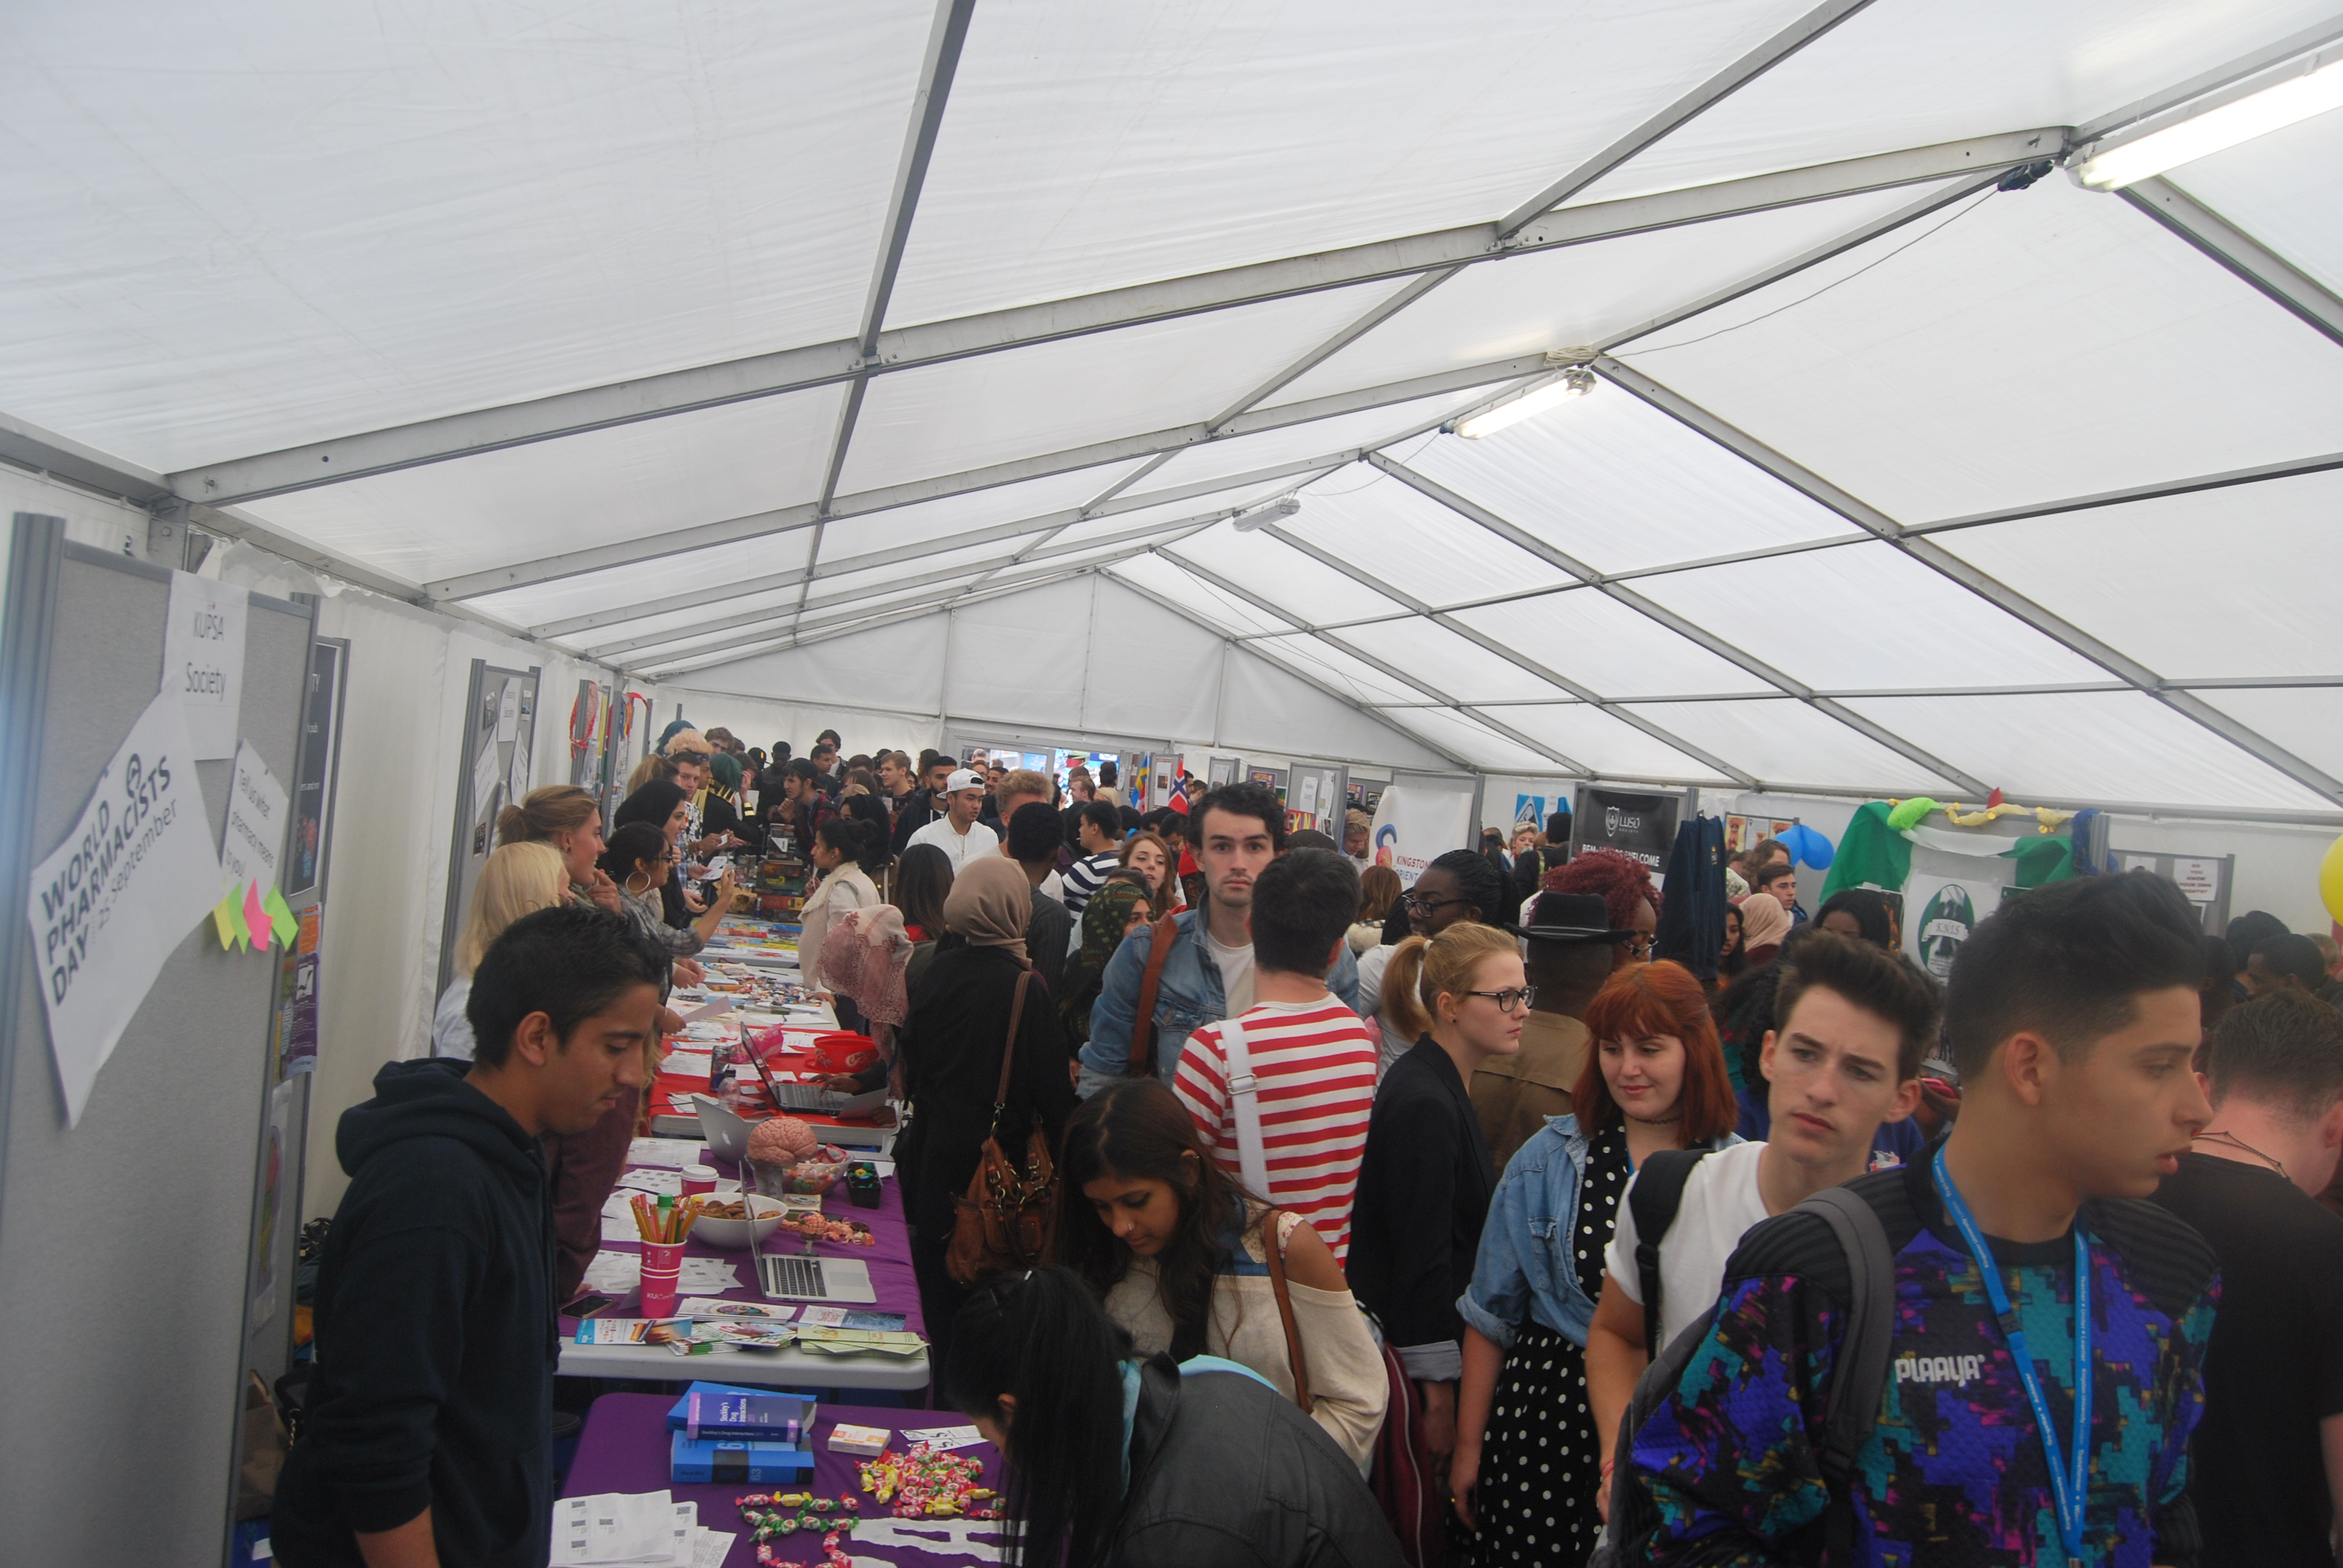 Huge crowds in the Marquee